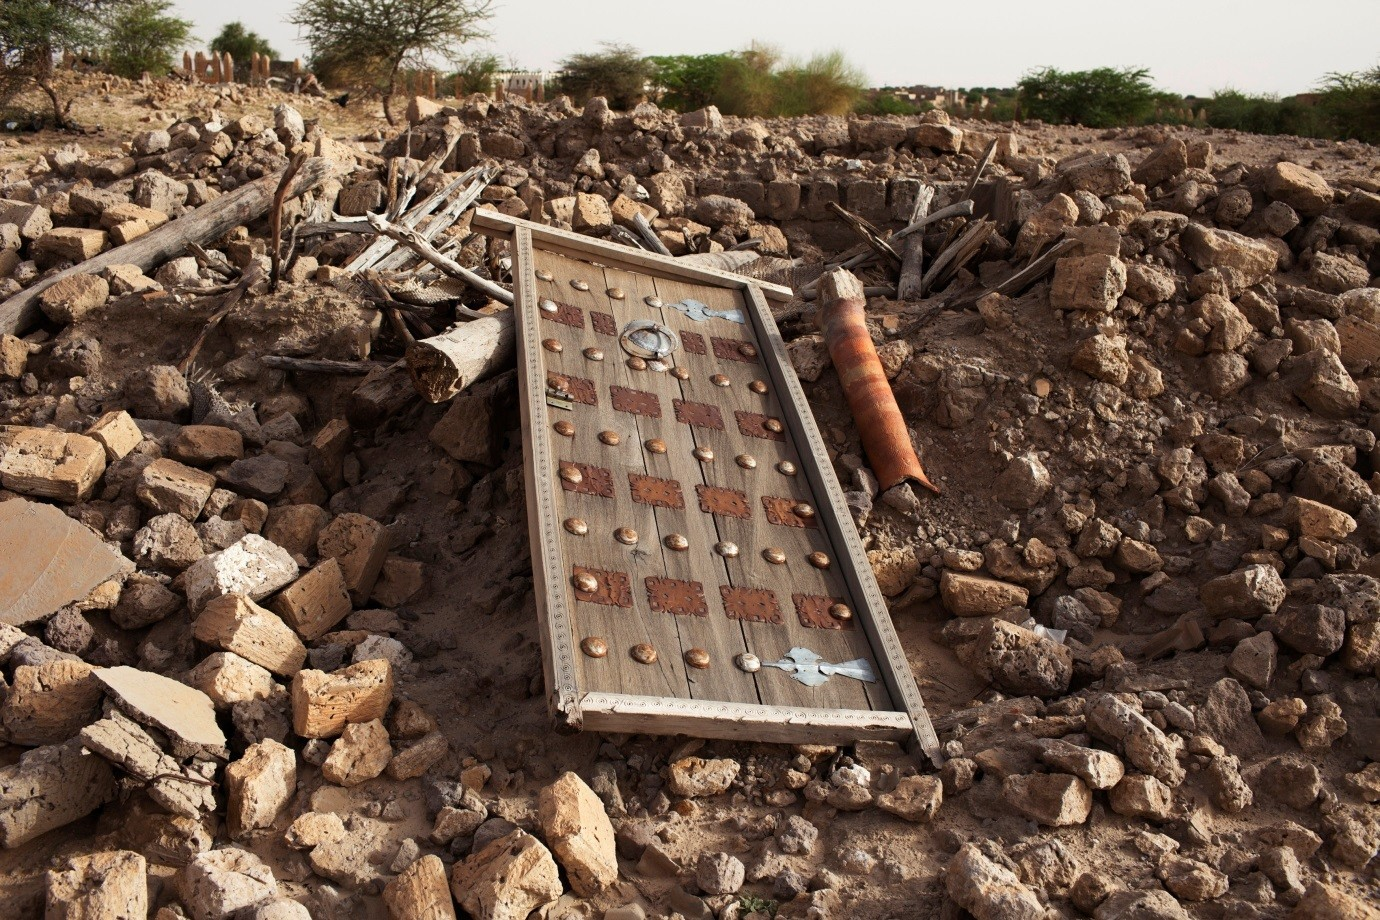 The rubble left from an ancient mausoleum destroyed by Islamist militants in Timbuktu.